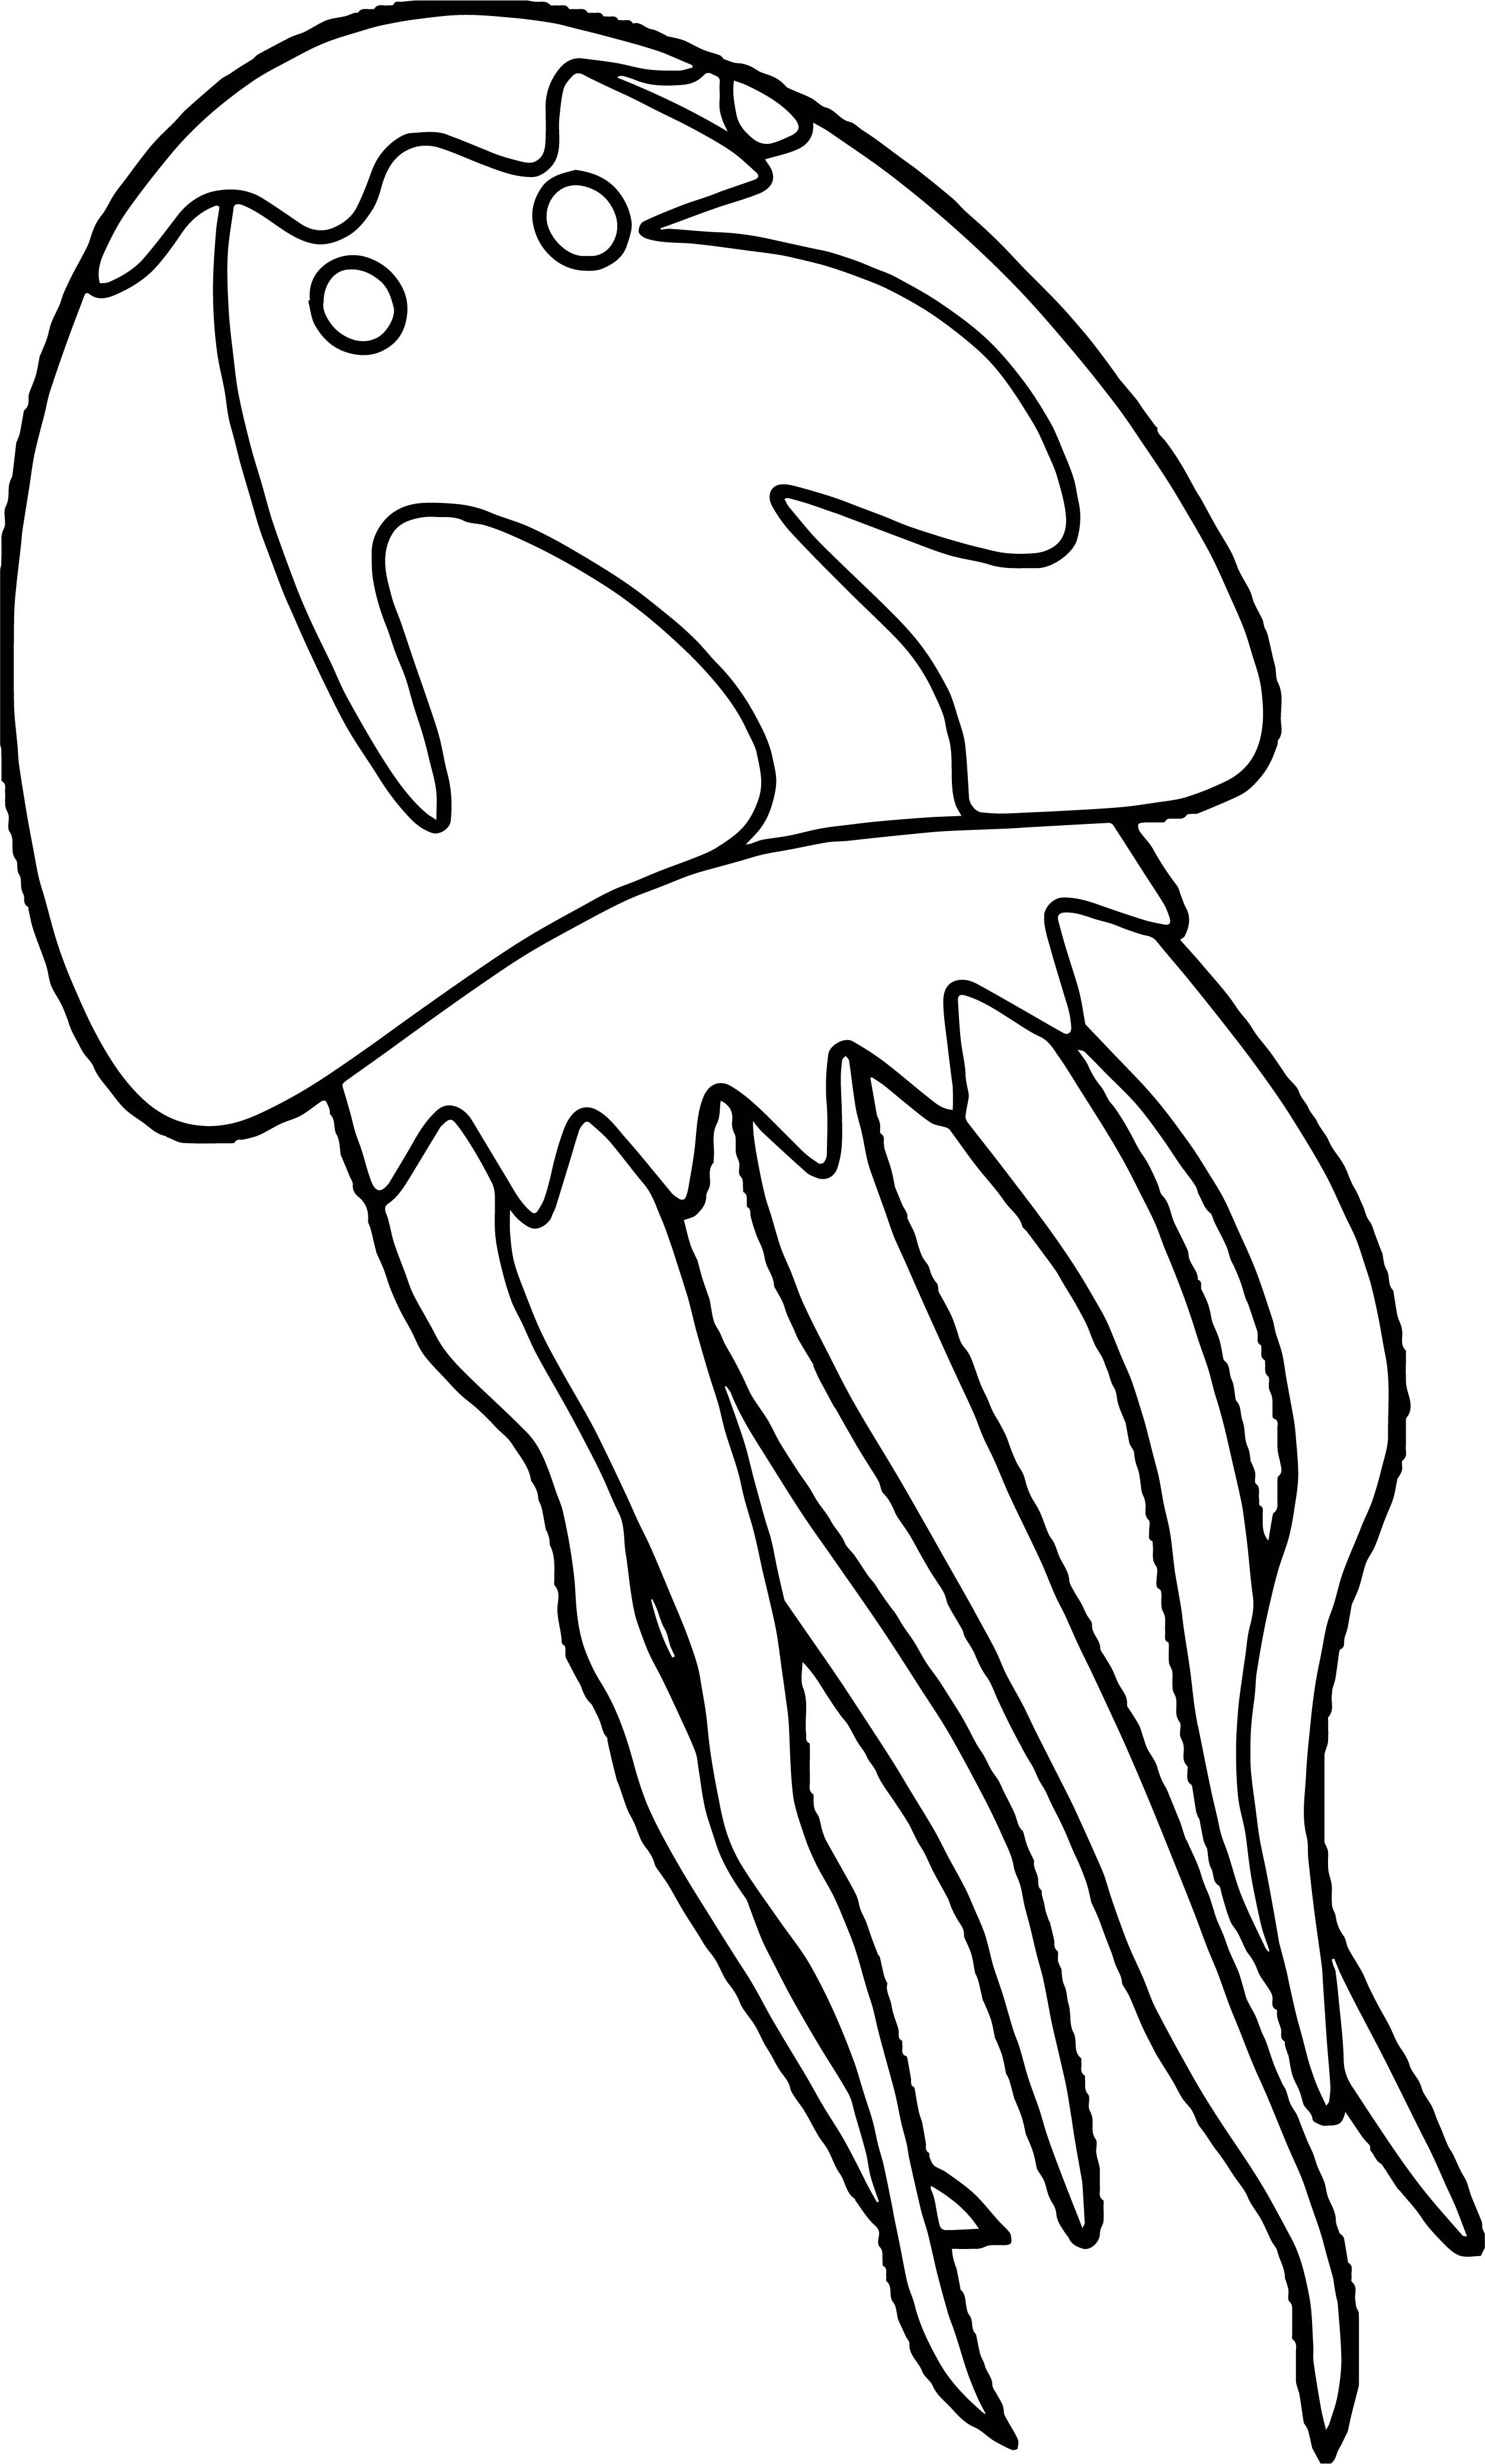 Jellyfish Up Coloring Page